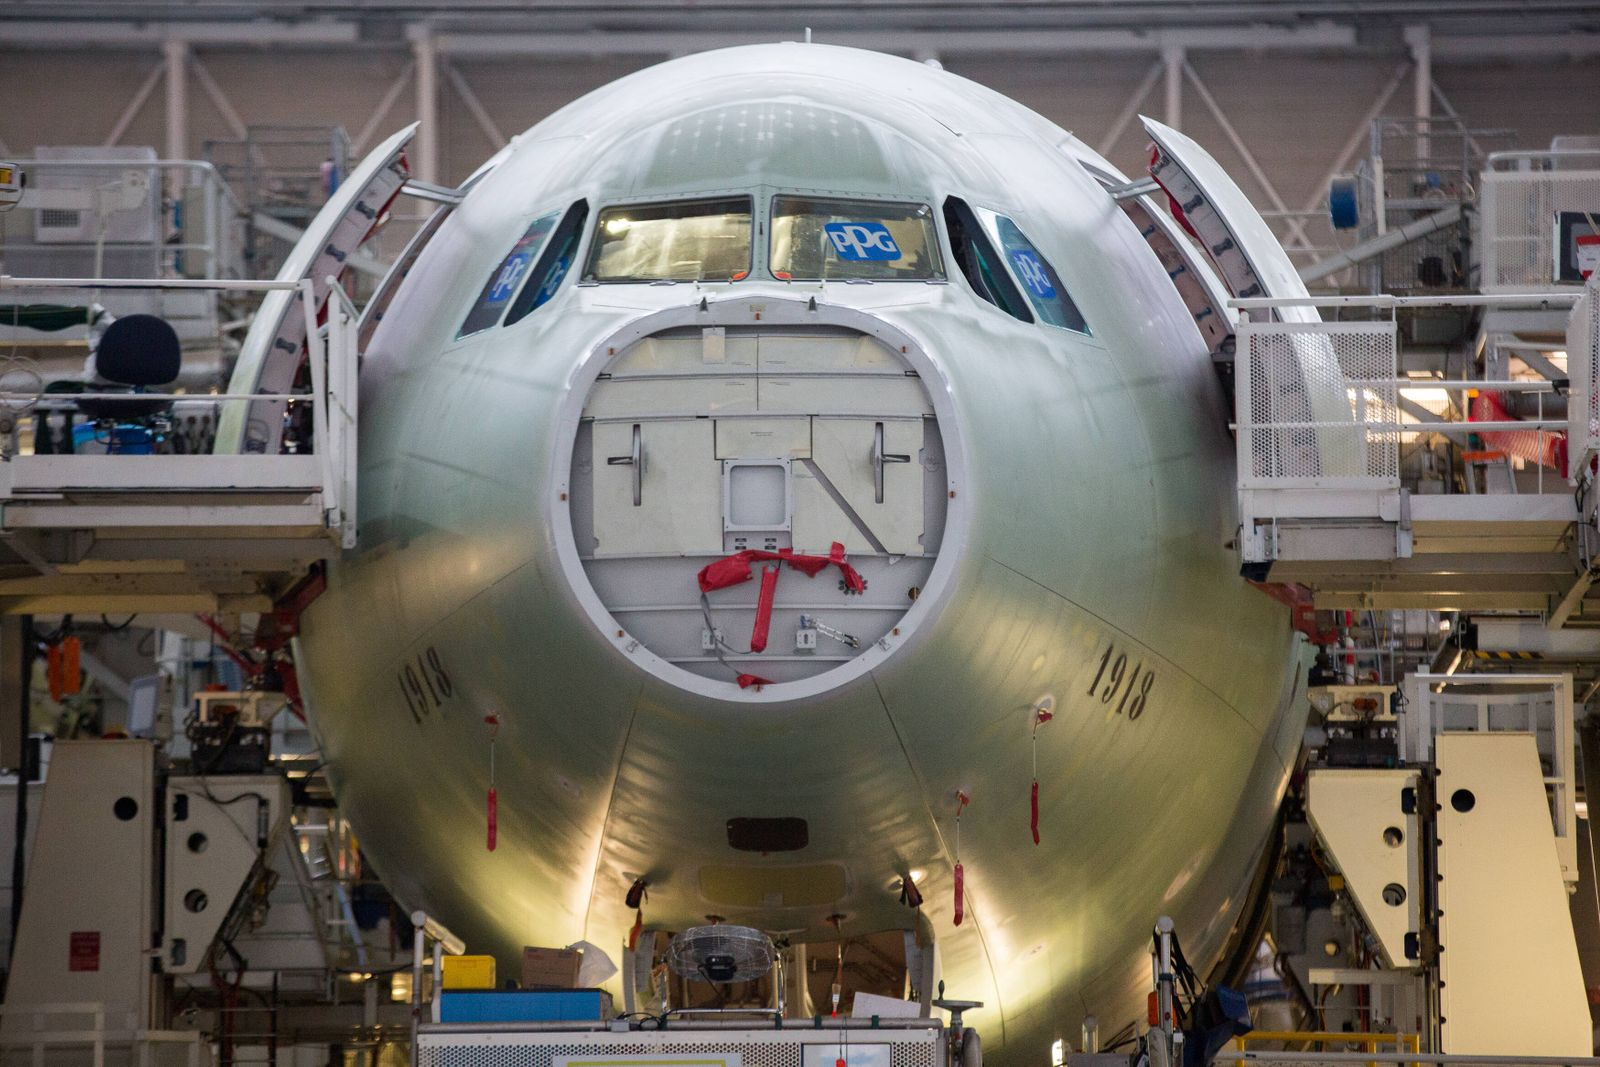 FRANCE - INDUSTRY - ECONOMY - PLANES - AIRBUS A330 aircraft assembly line produced by the European airline Airbus. Nove